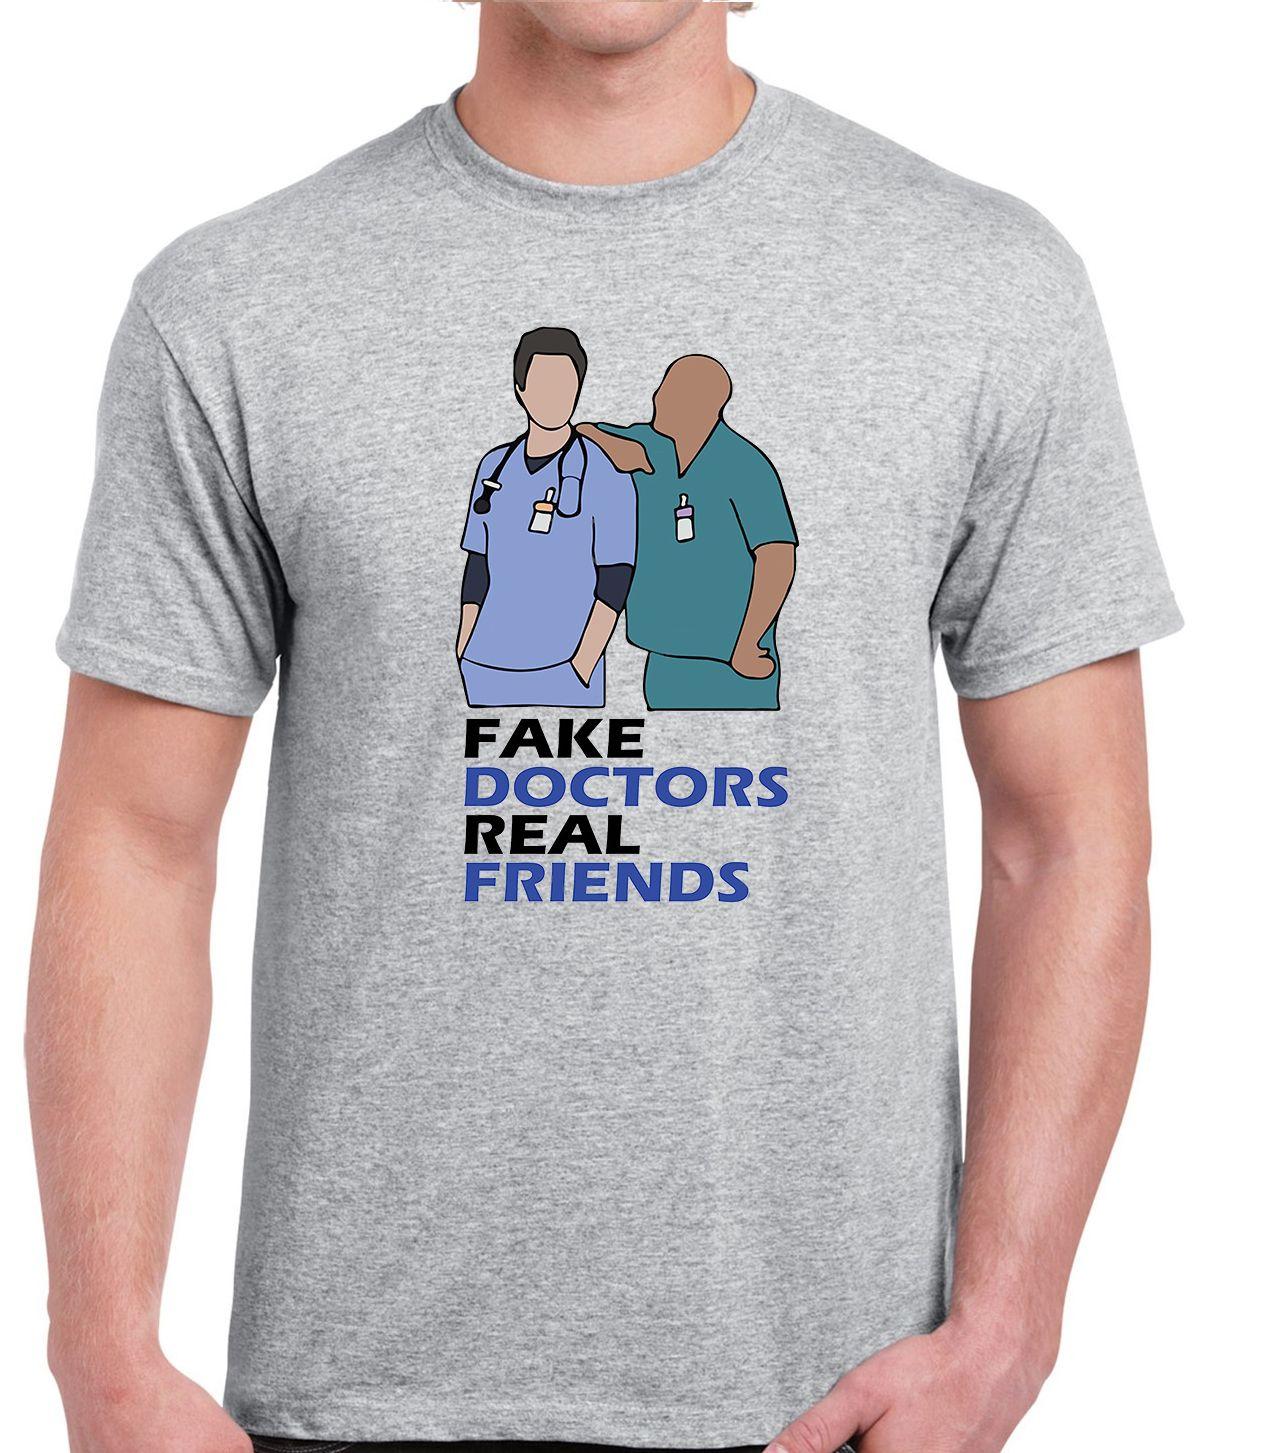 Fake Doctors Real Friends T-shirt